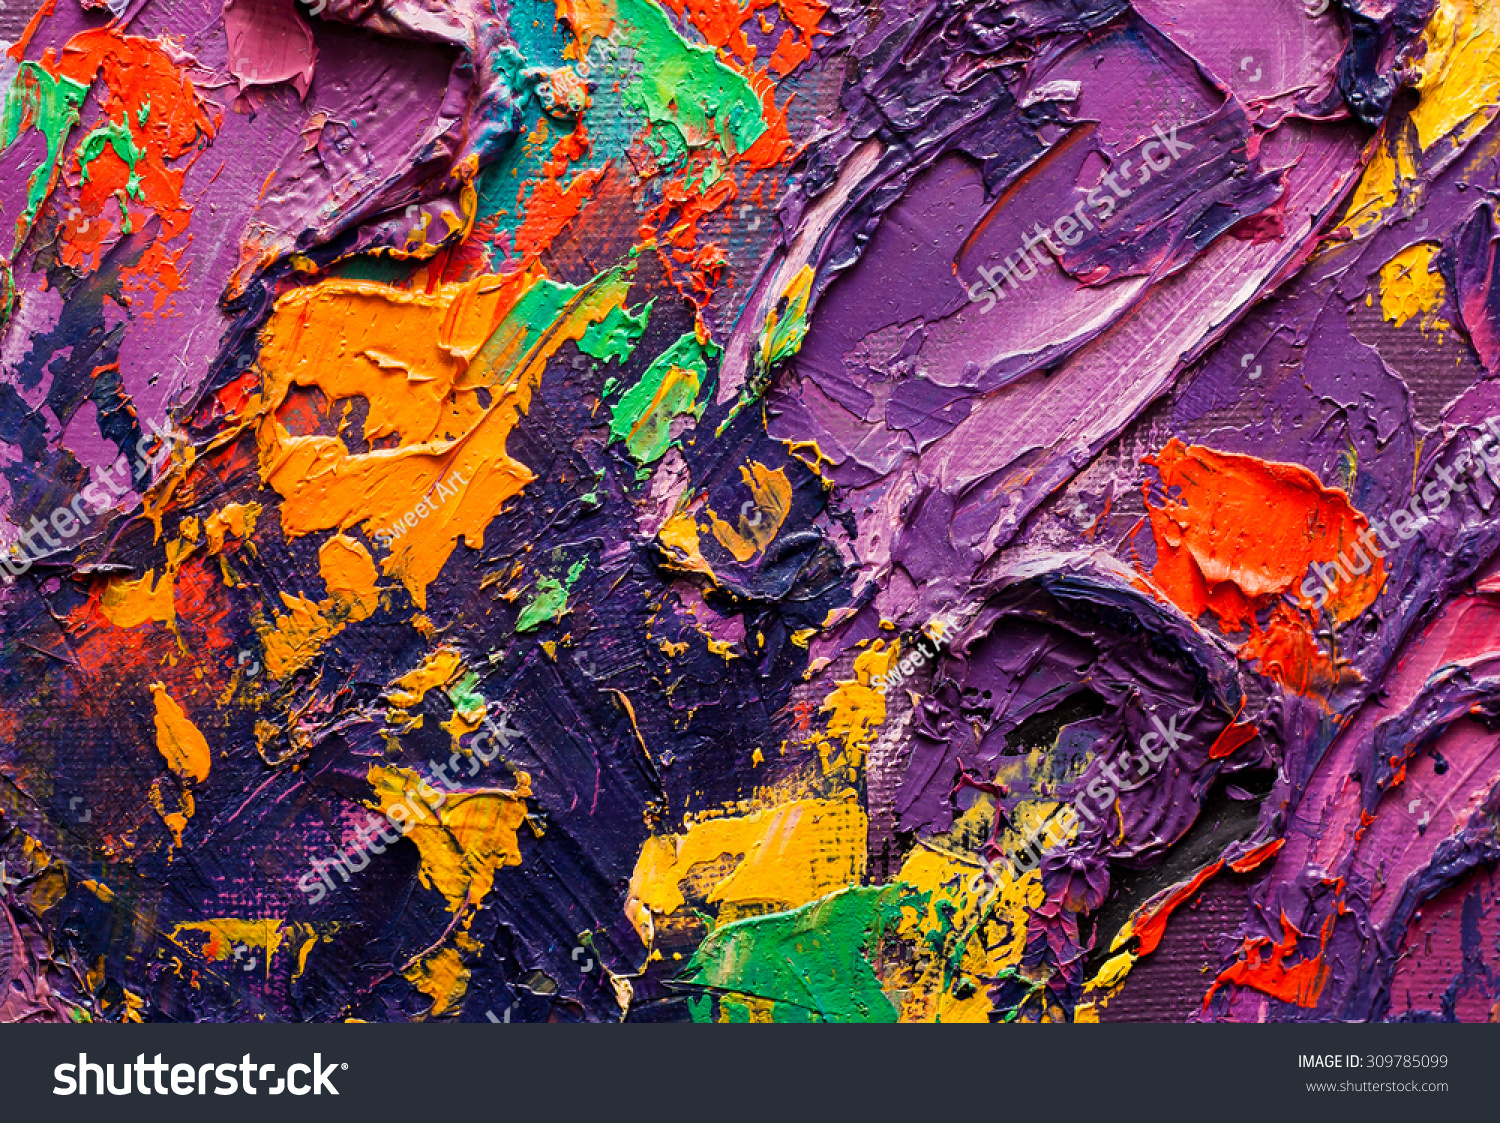 Abstract art background oil painting on stock illustration for Texture painting on canvas